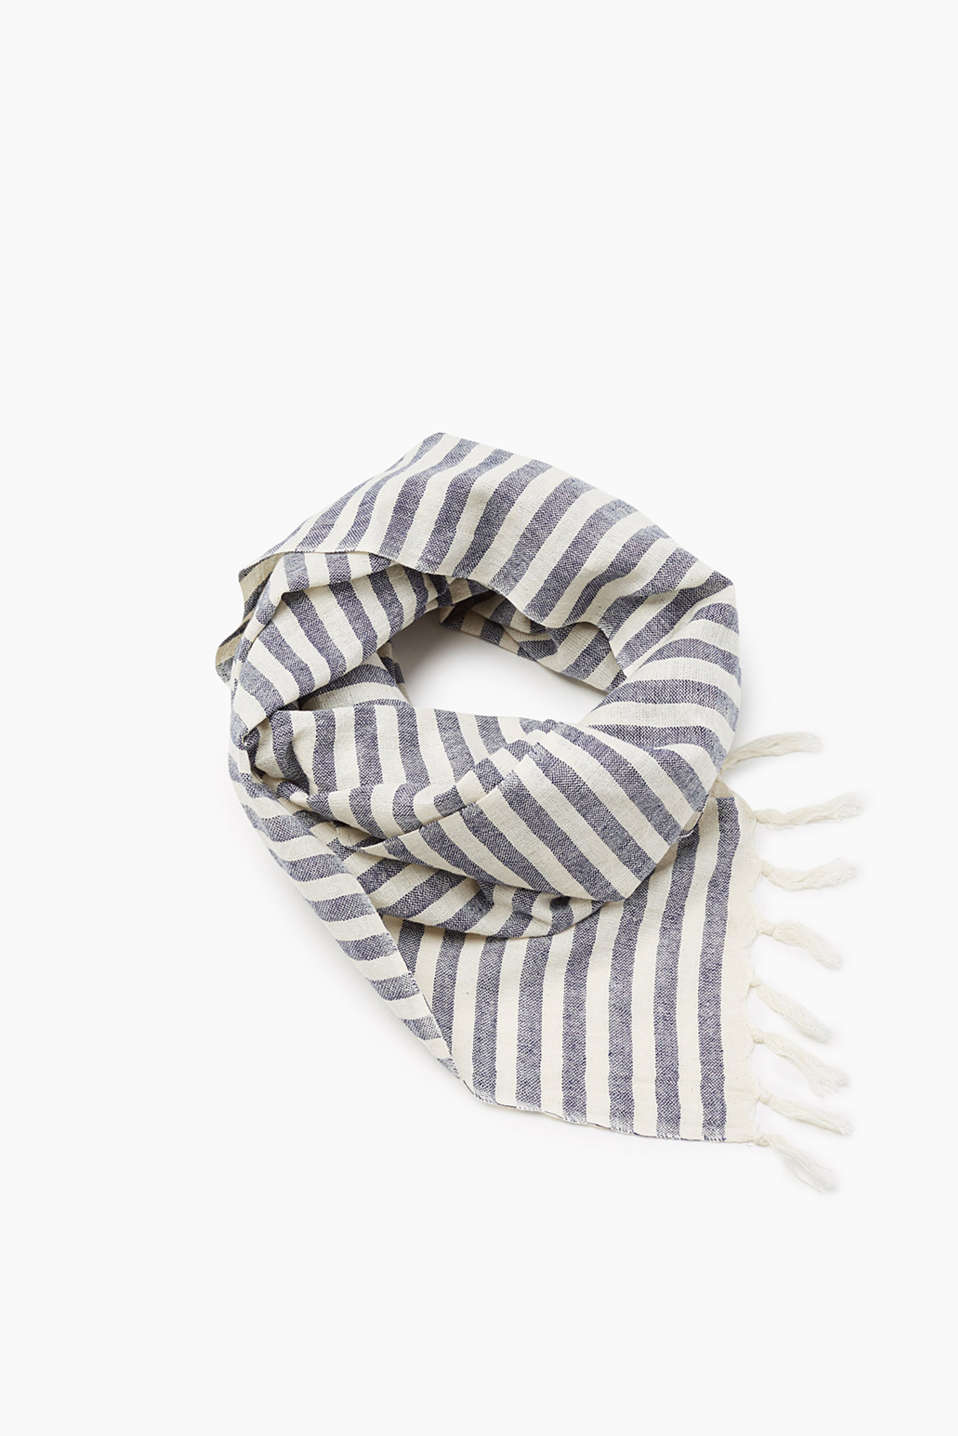 In a classic striped look: scarf with a slightly grainy texture